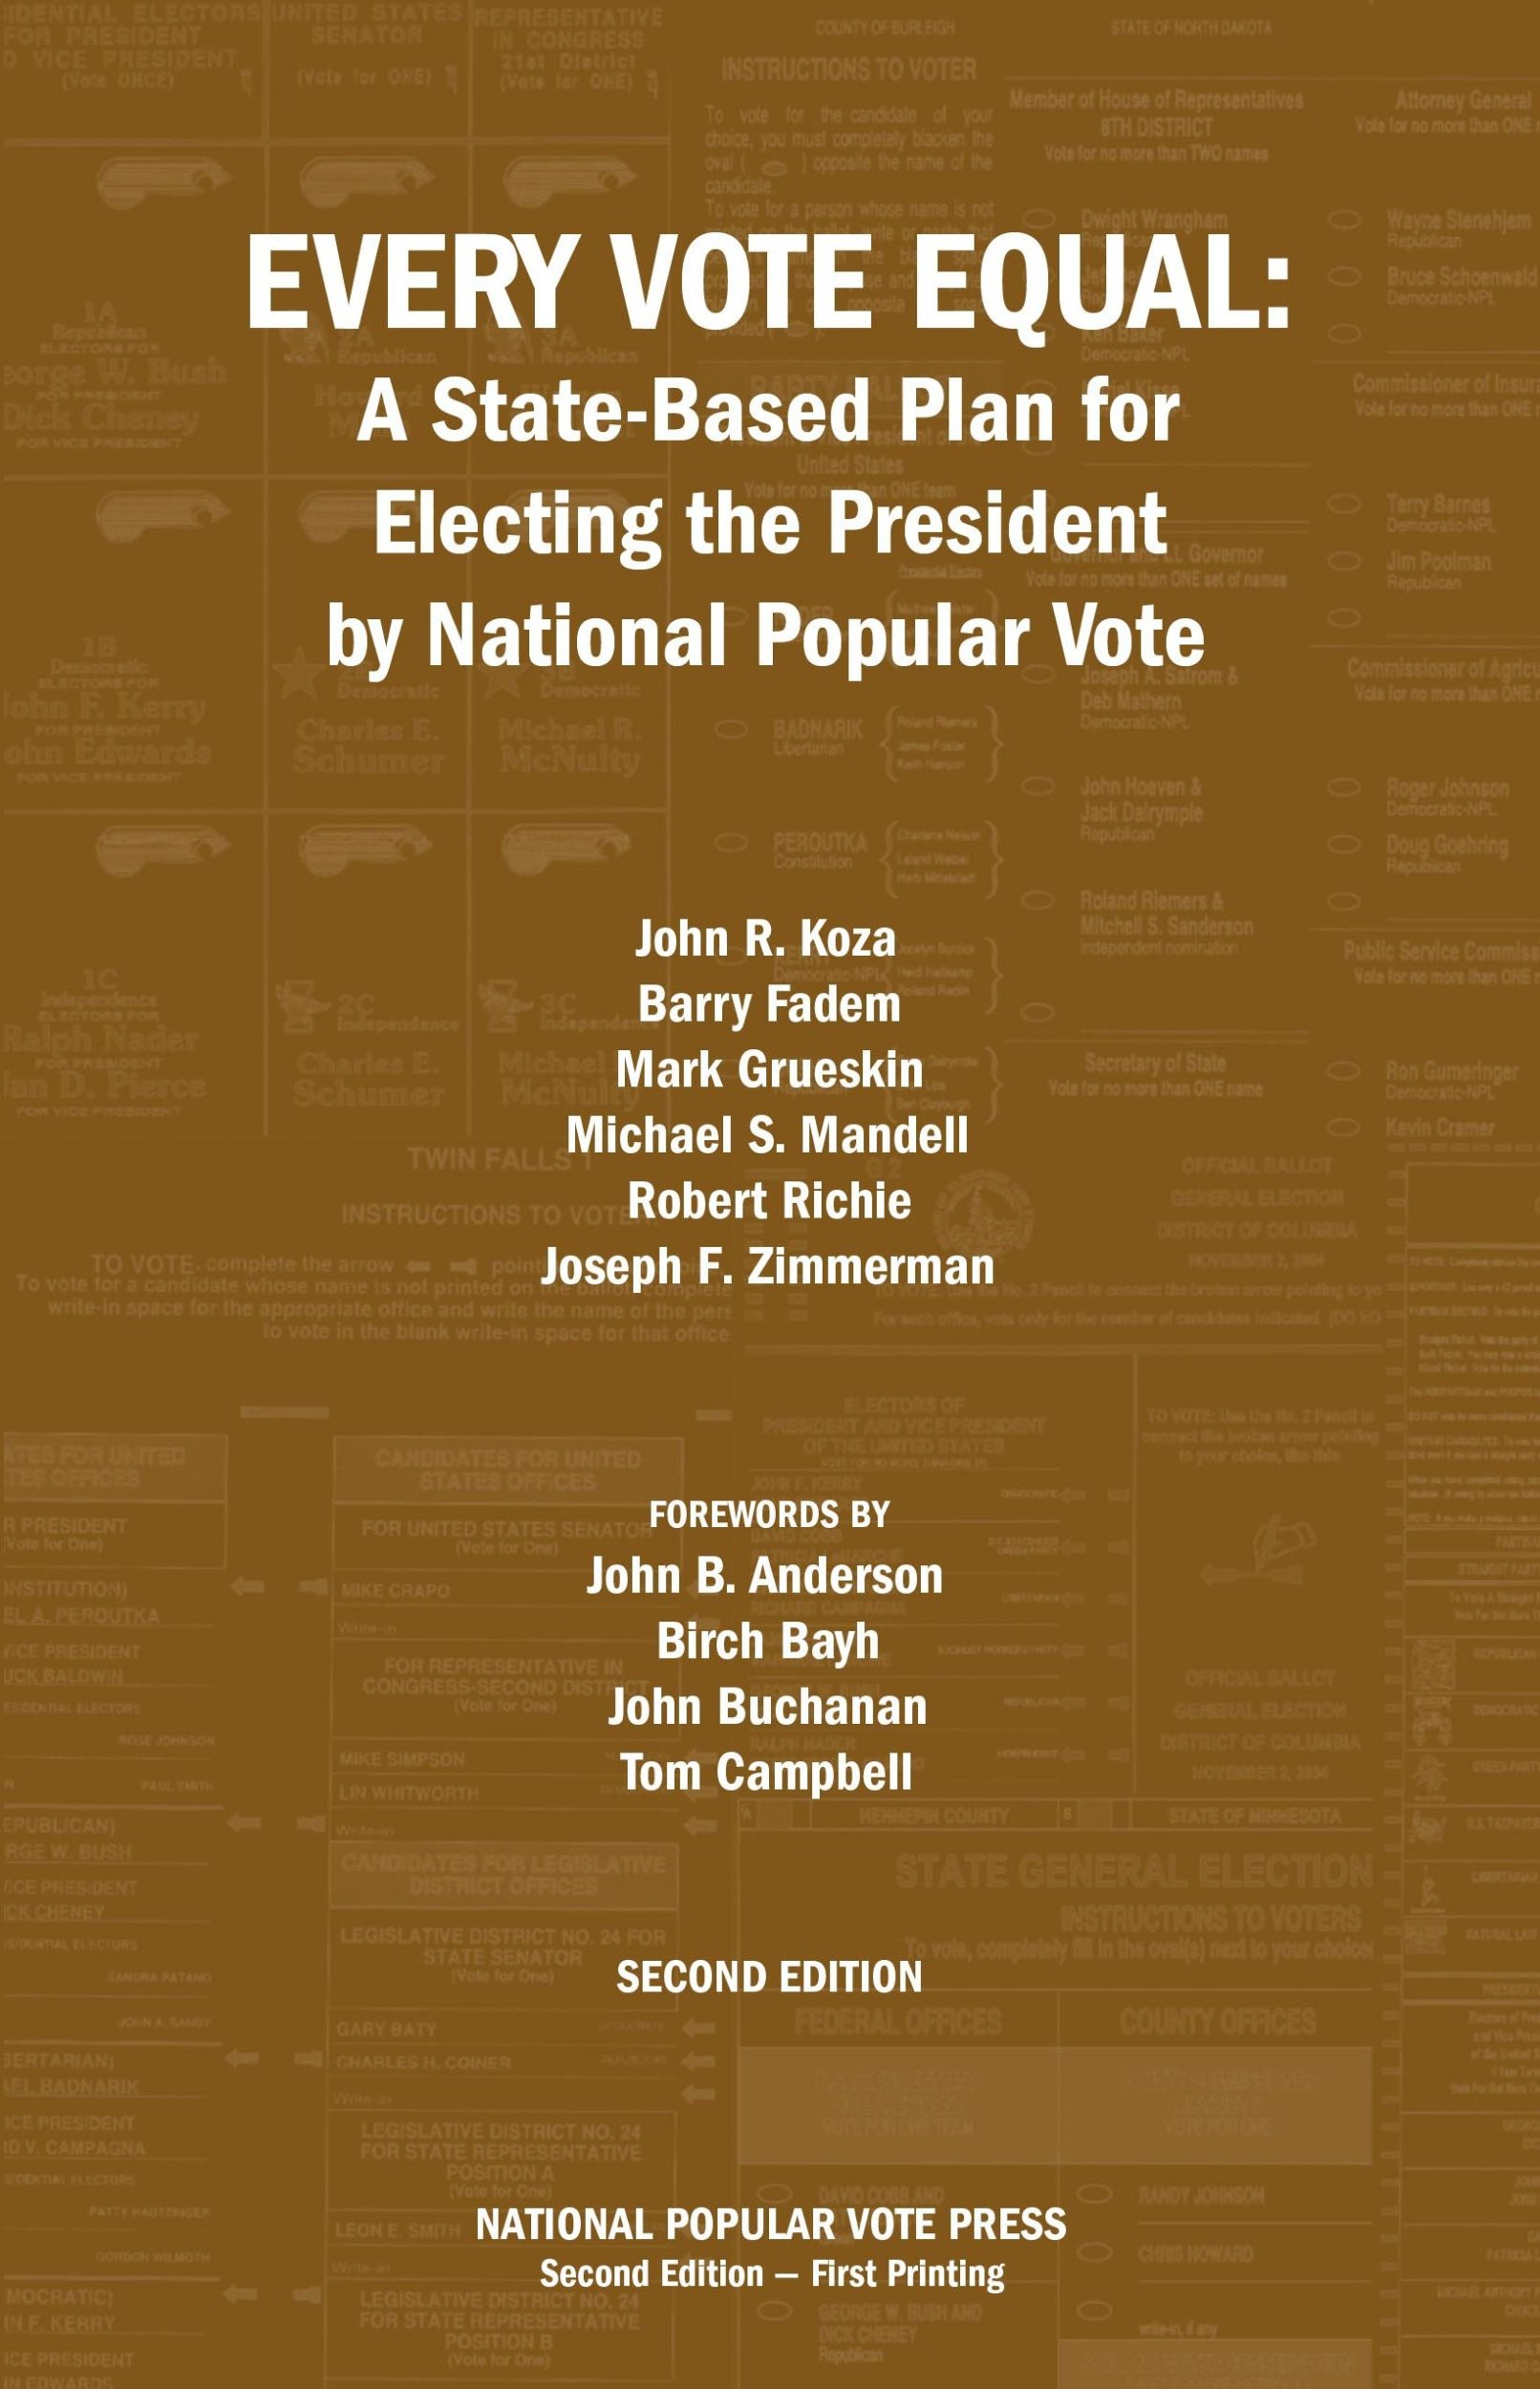 Every Vote Equal: A State-Based Plan for Electing the President by National Popular Vote ebook